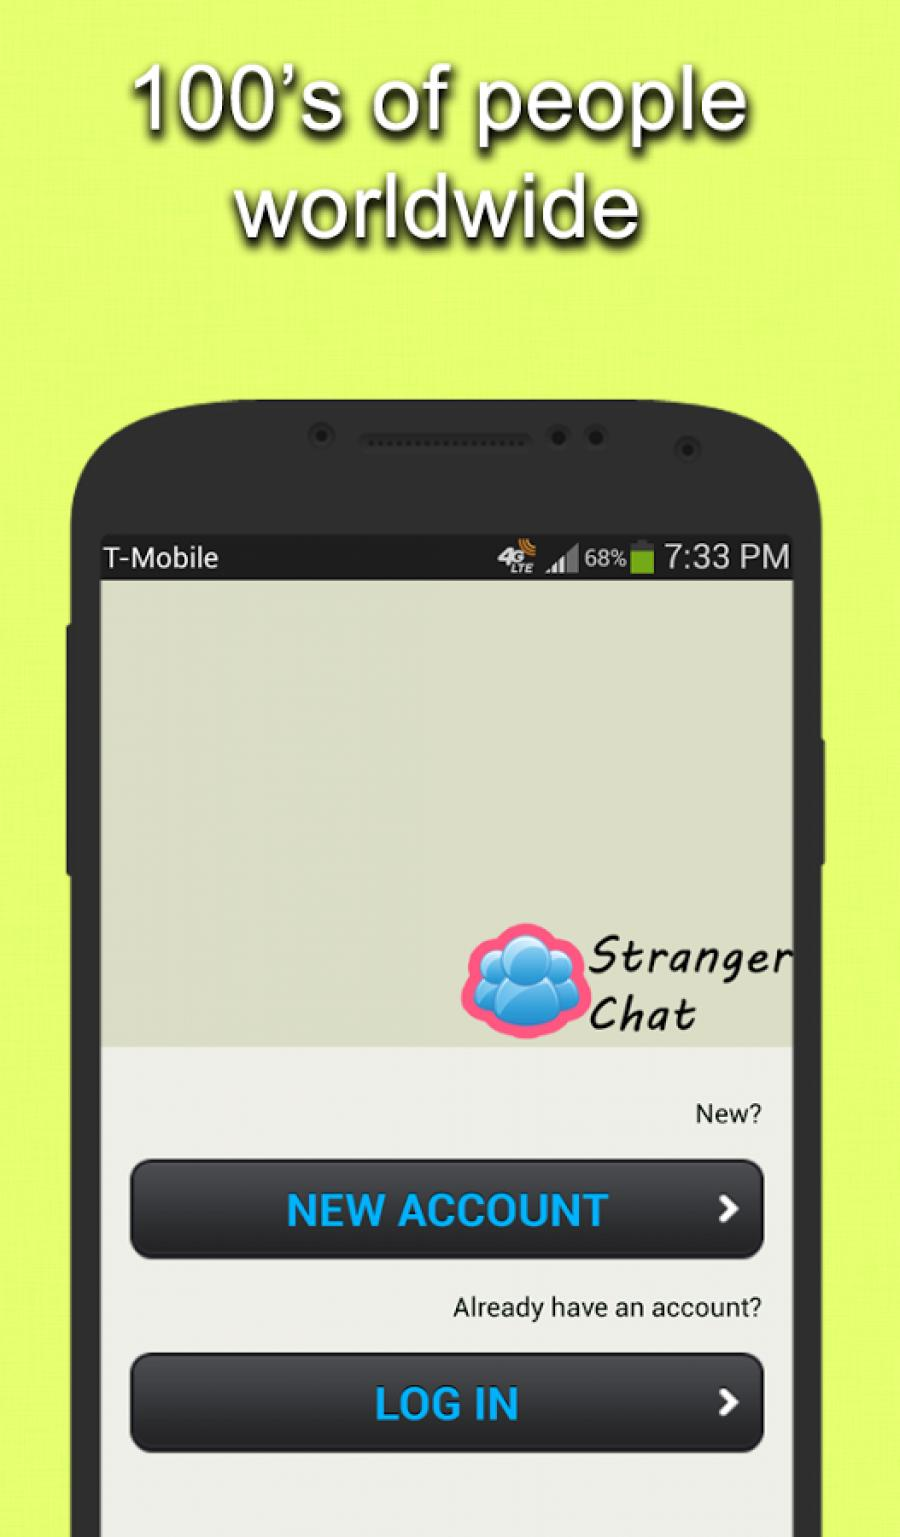 mina chat rooms Chat with little mina on wireclub wireclub is a social network that is all about chat and conversations discover endless topics with interesting people and chat rooms.